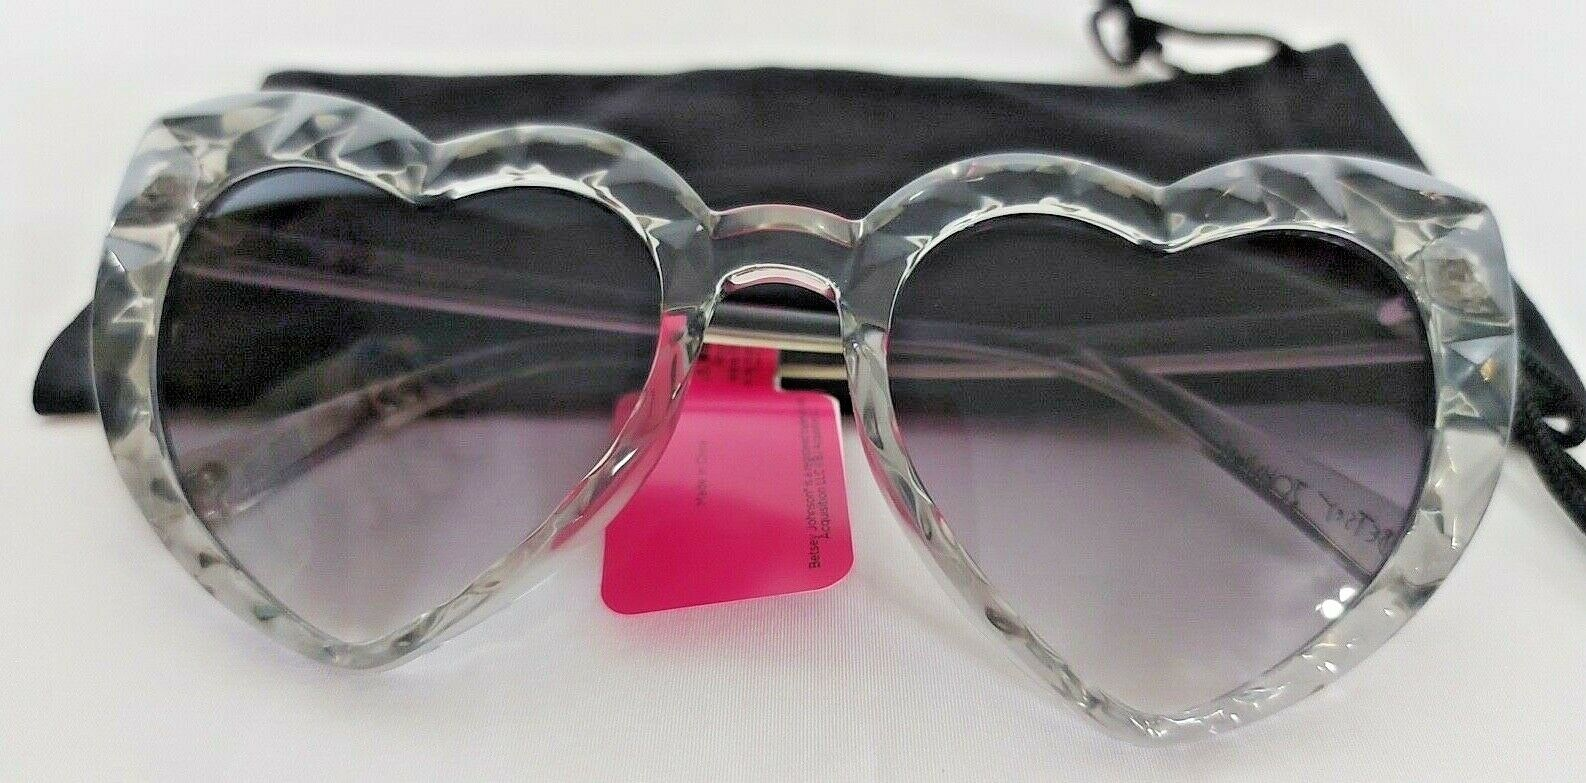 Betsey Johnson Sunglasses 100% UVA Protection Comes With Protective Pouch NWT